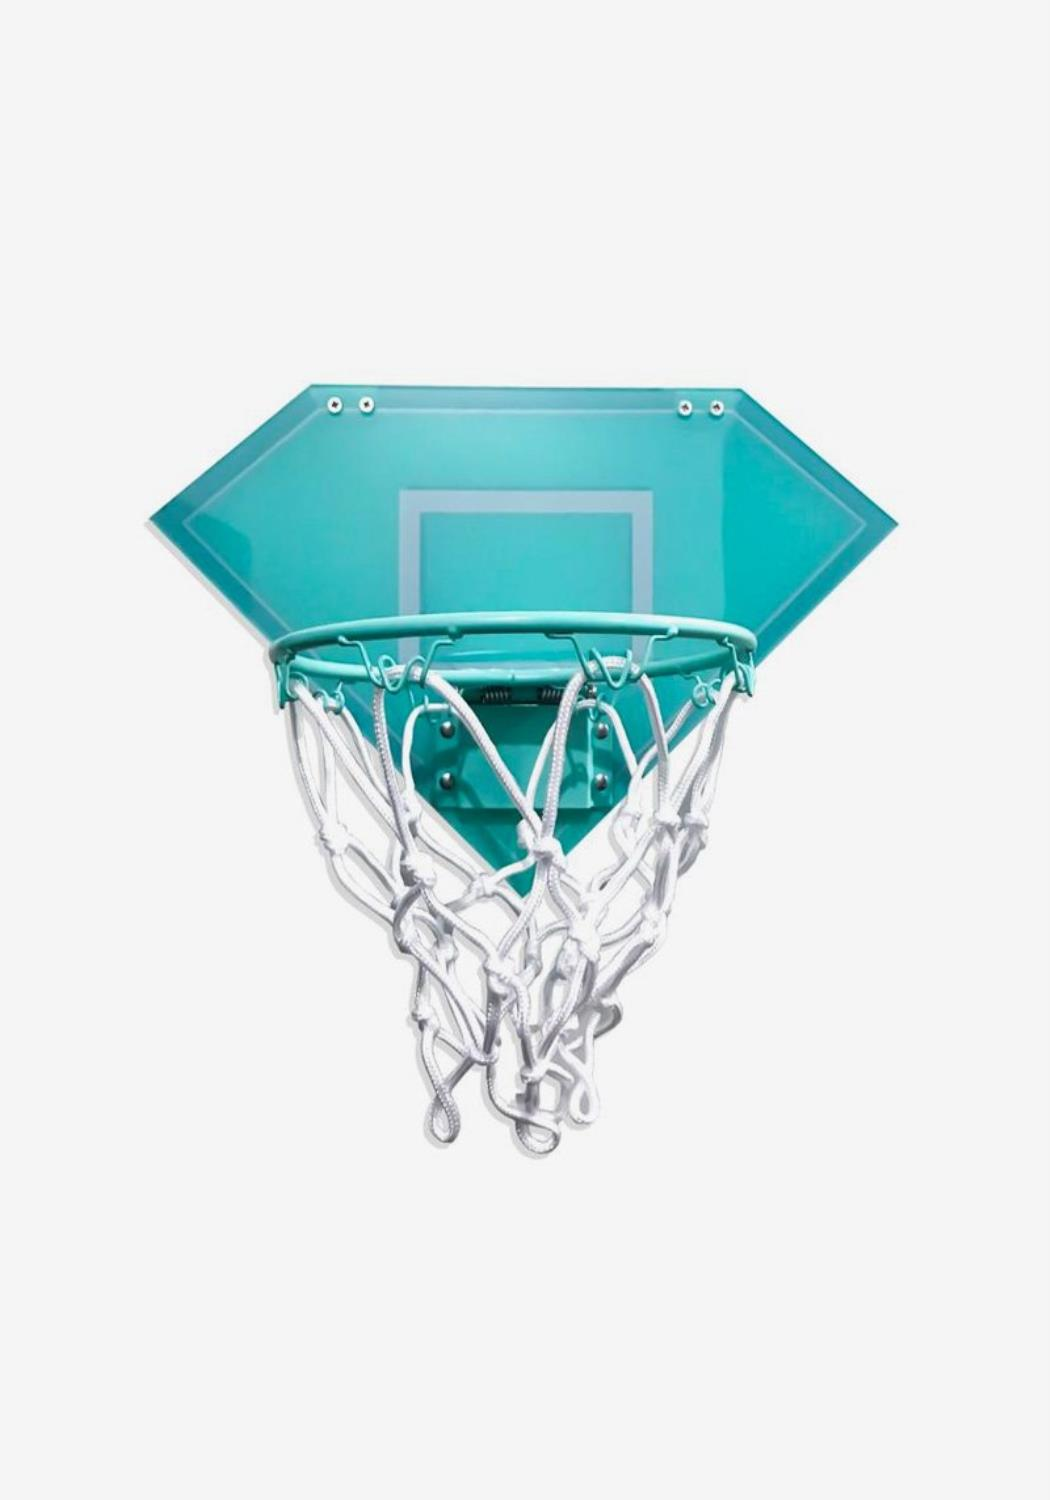 Diamond Supply - Basketball Hoop